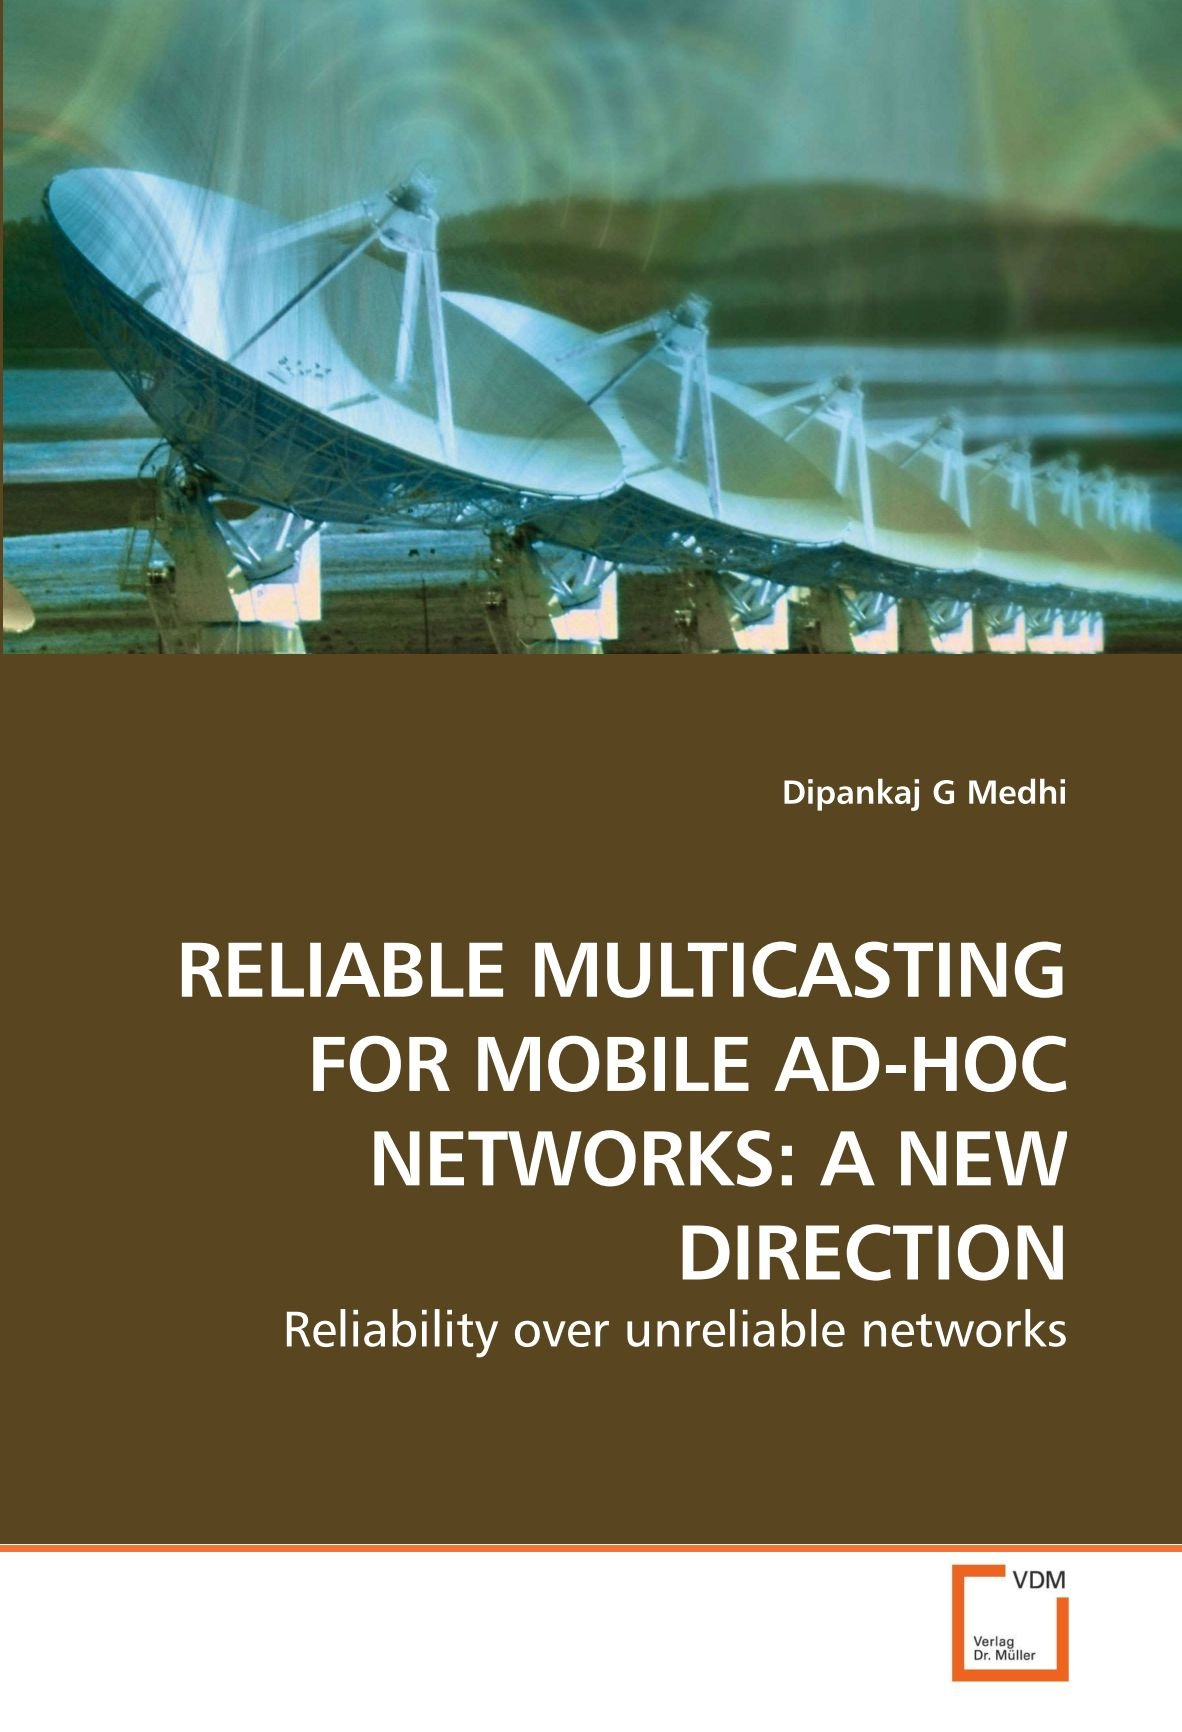 RELIABLE MULTICASTING FOR MOBILE AD-HOC NETWORKS: A NEW DIRECTION: Reliability over unreliable networks pdf epub